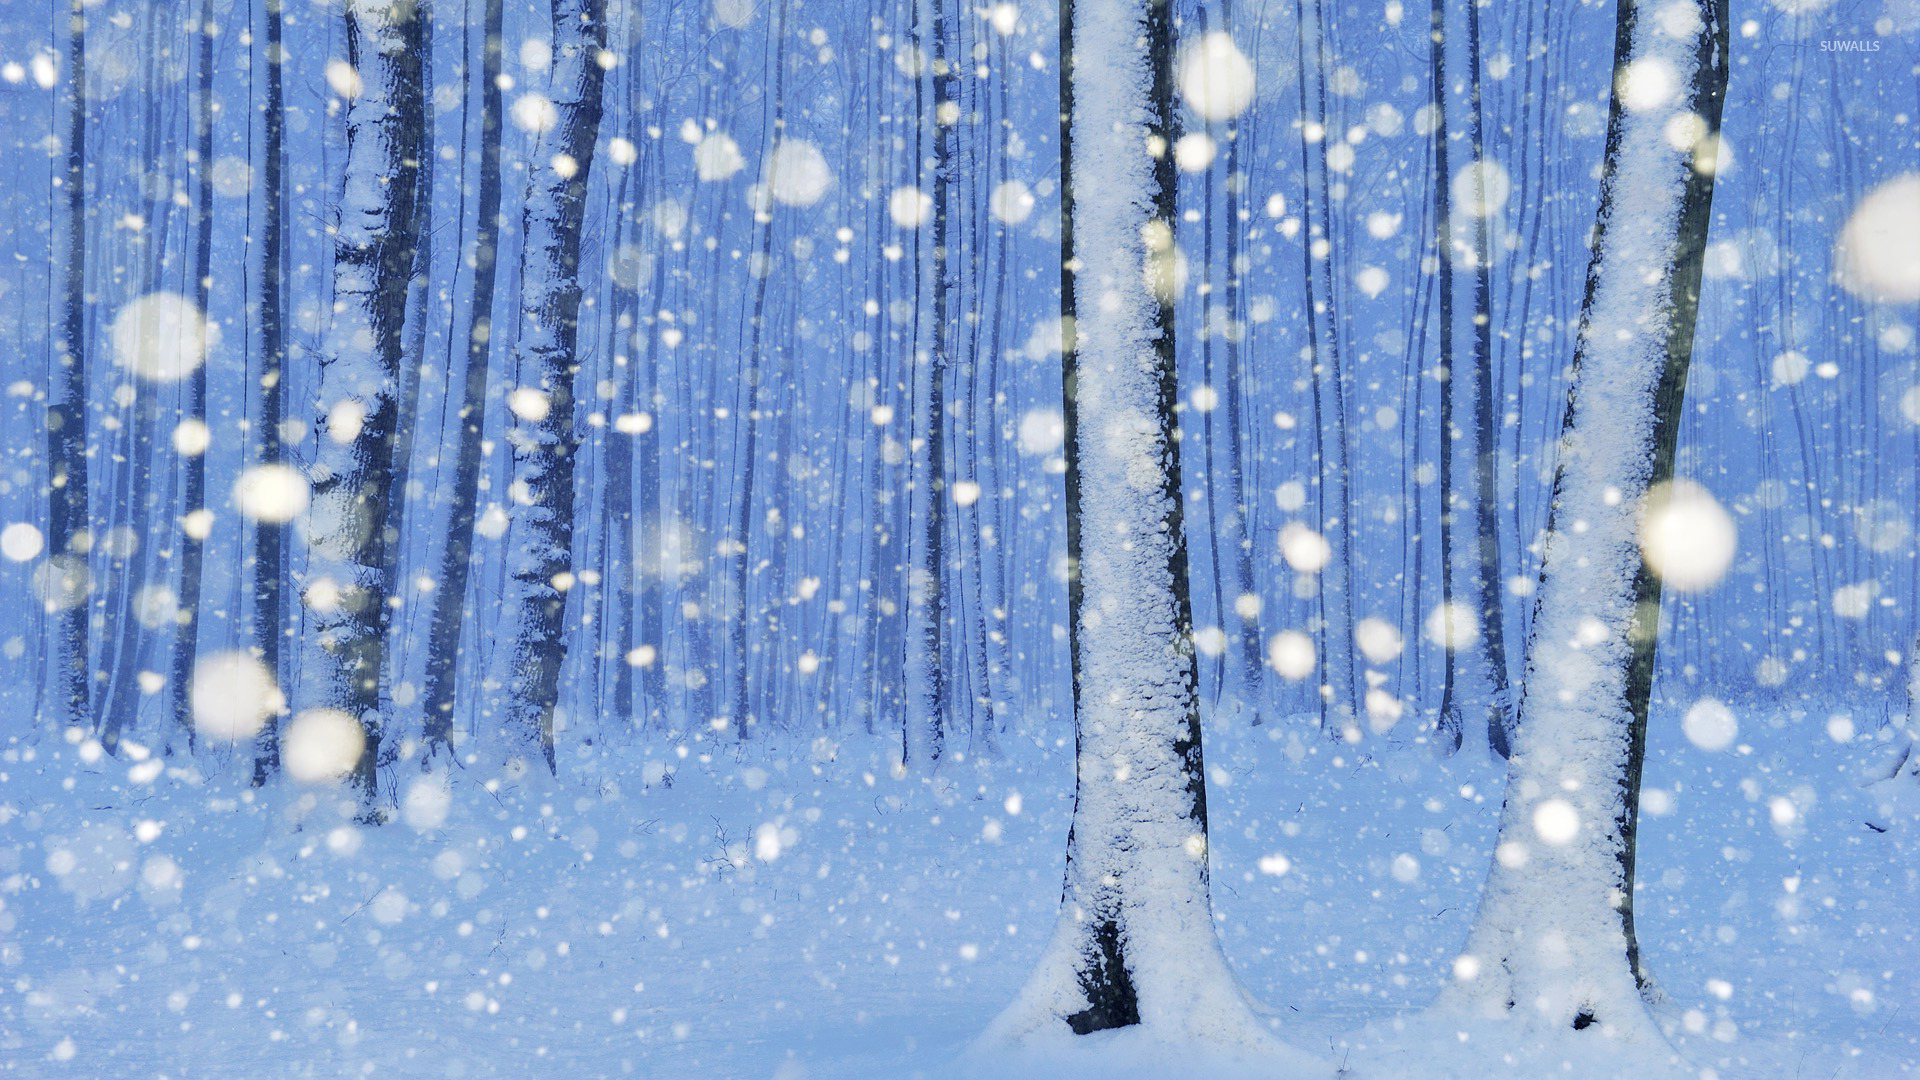 Snowy trees wallpaper   Artistic wallpapers   16322 1920x1080